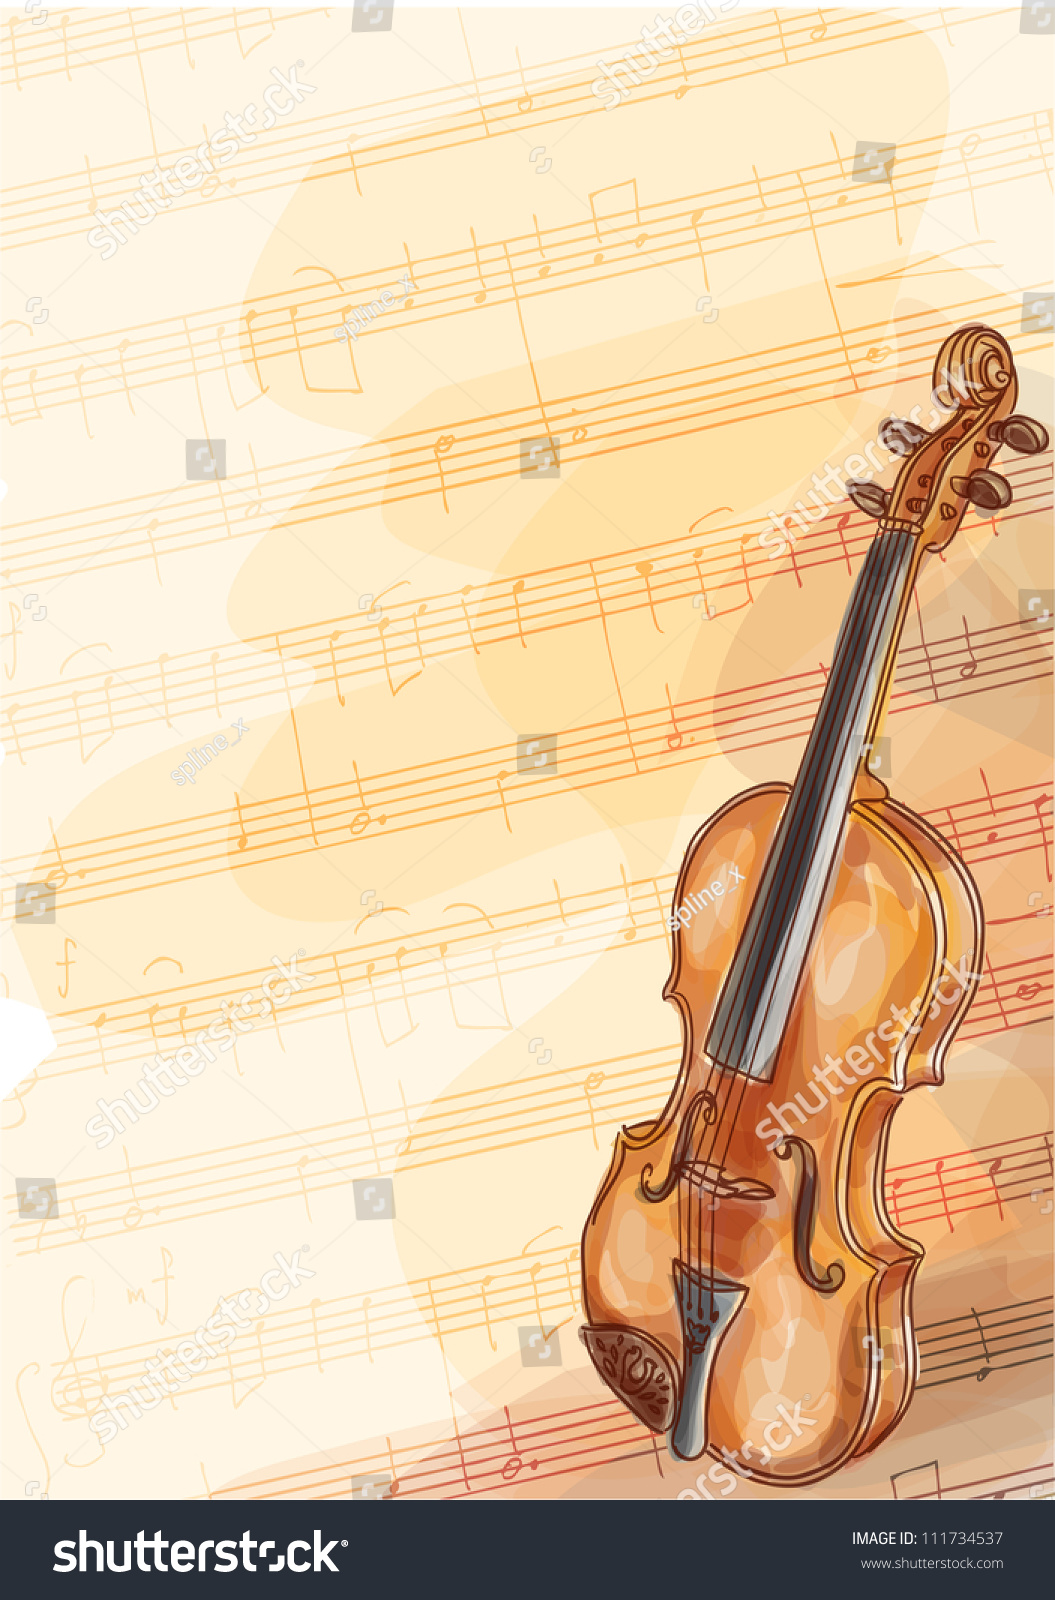 Violin On Music Background Handmade Notes Stock Vector ...